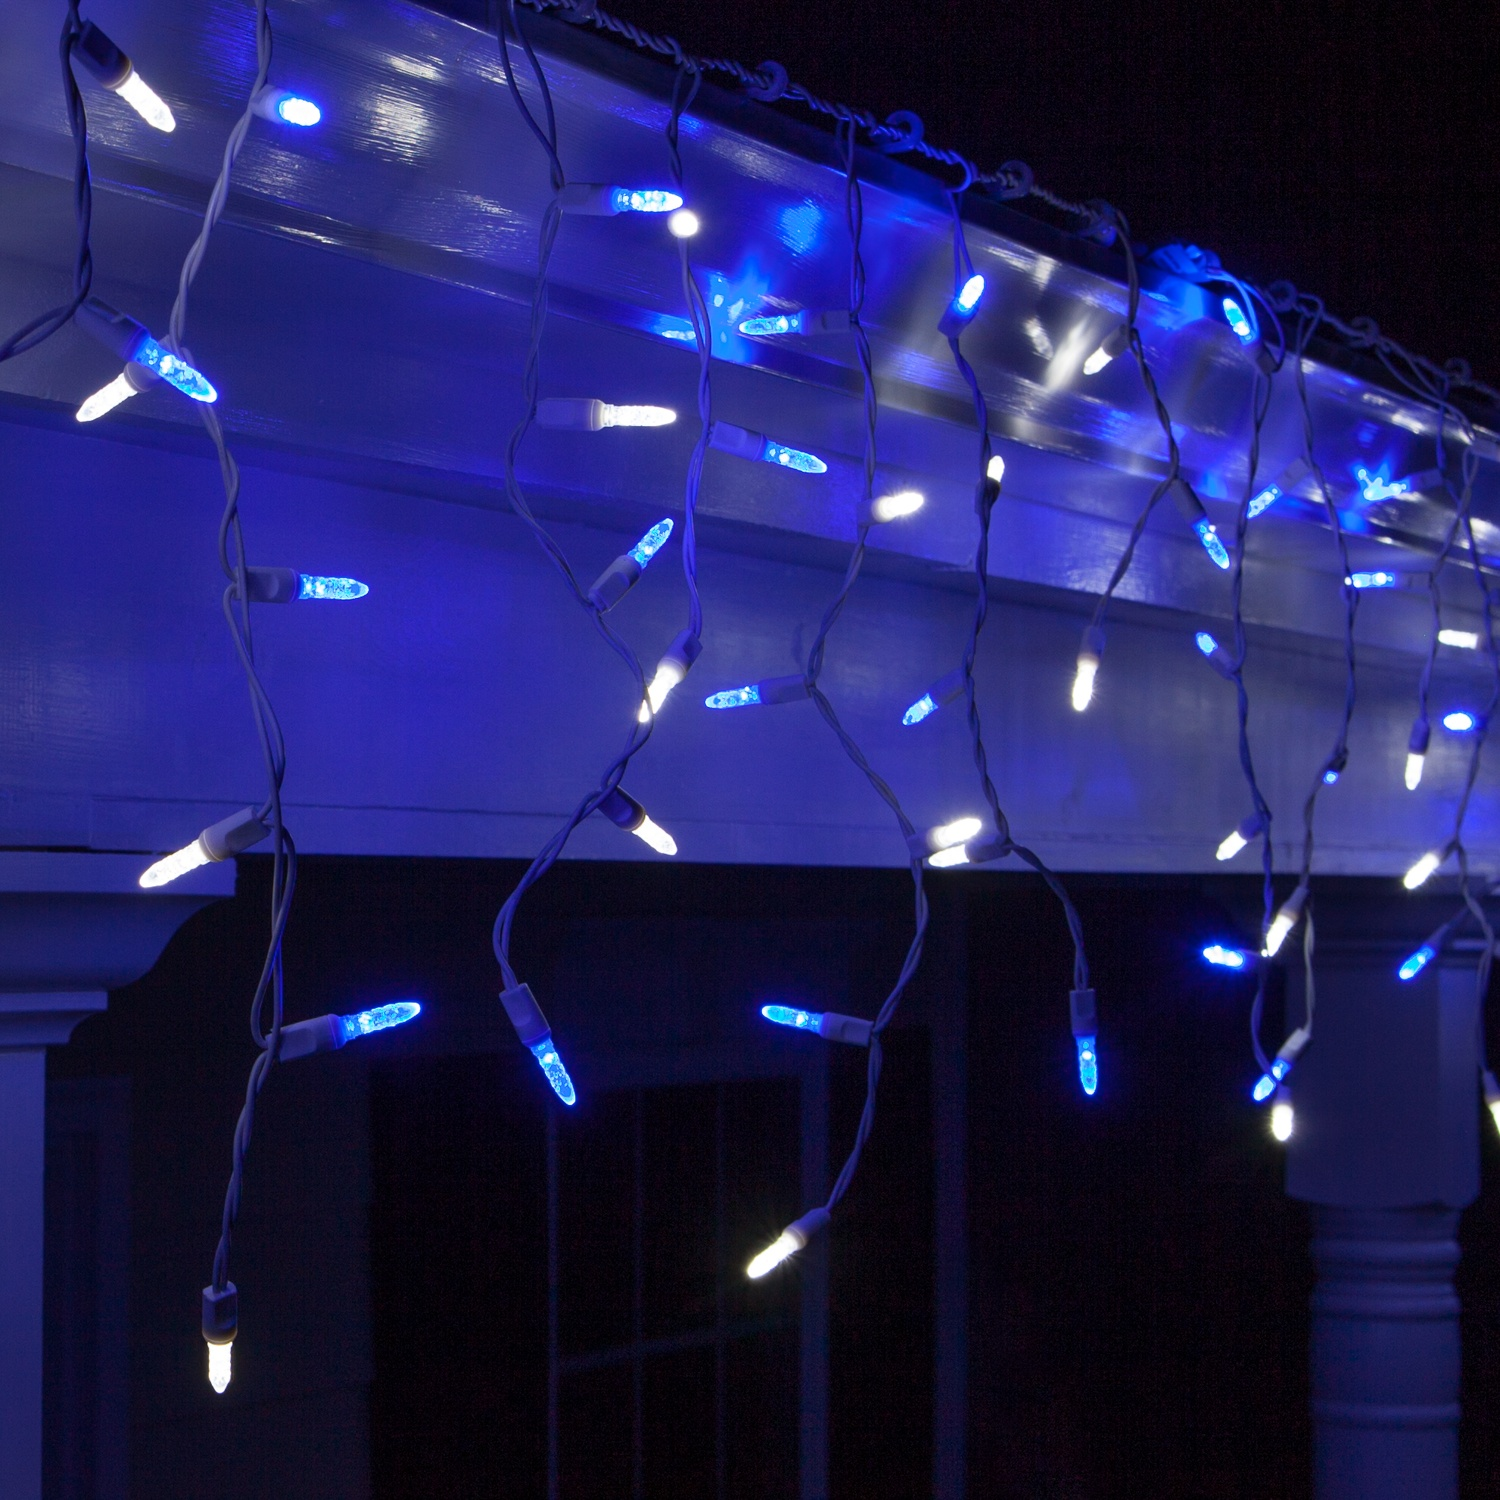 Led Christmas Lights 70 M5 Blue And White Led Icicle Lights